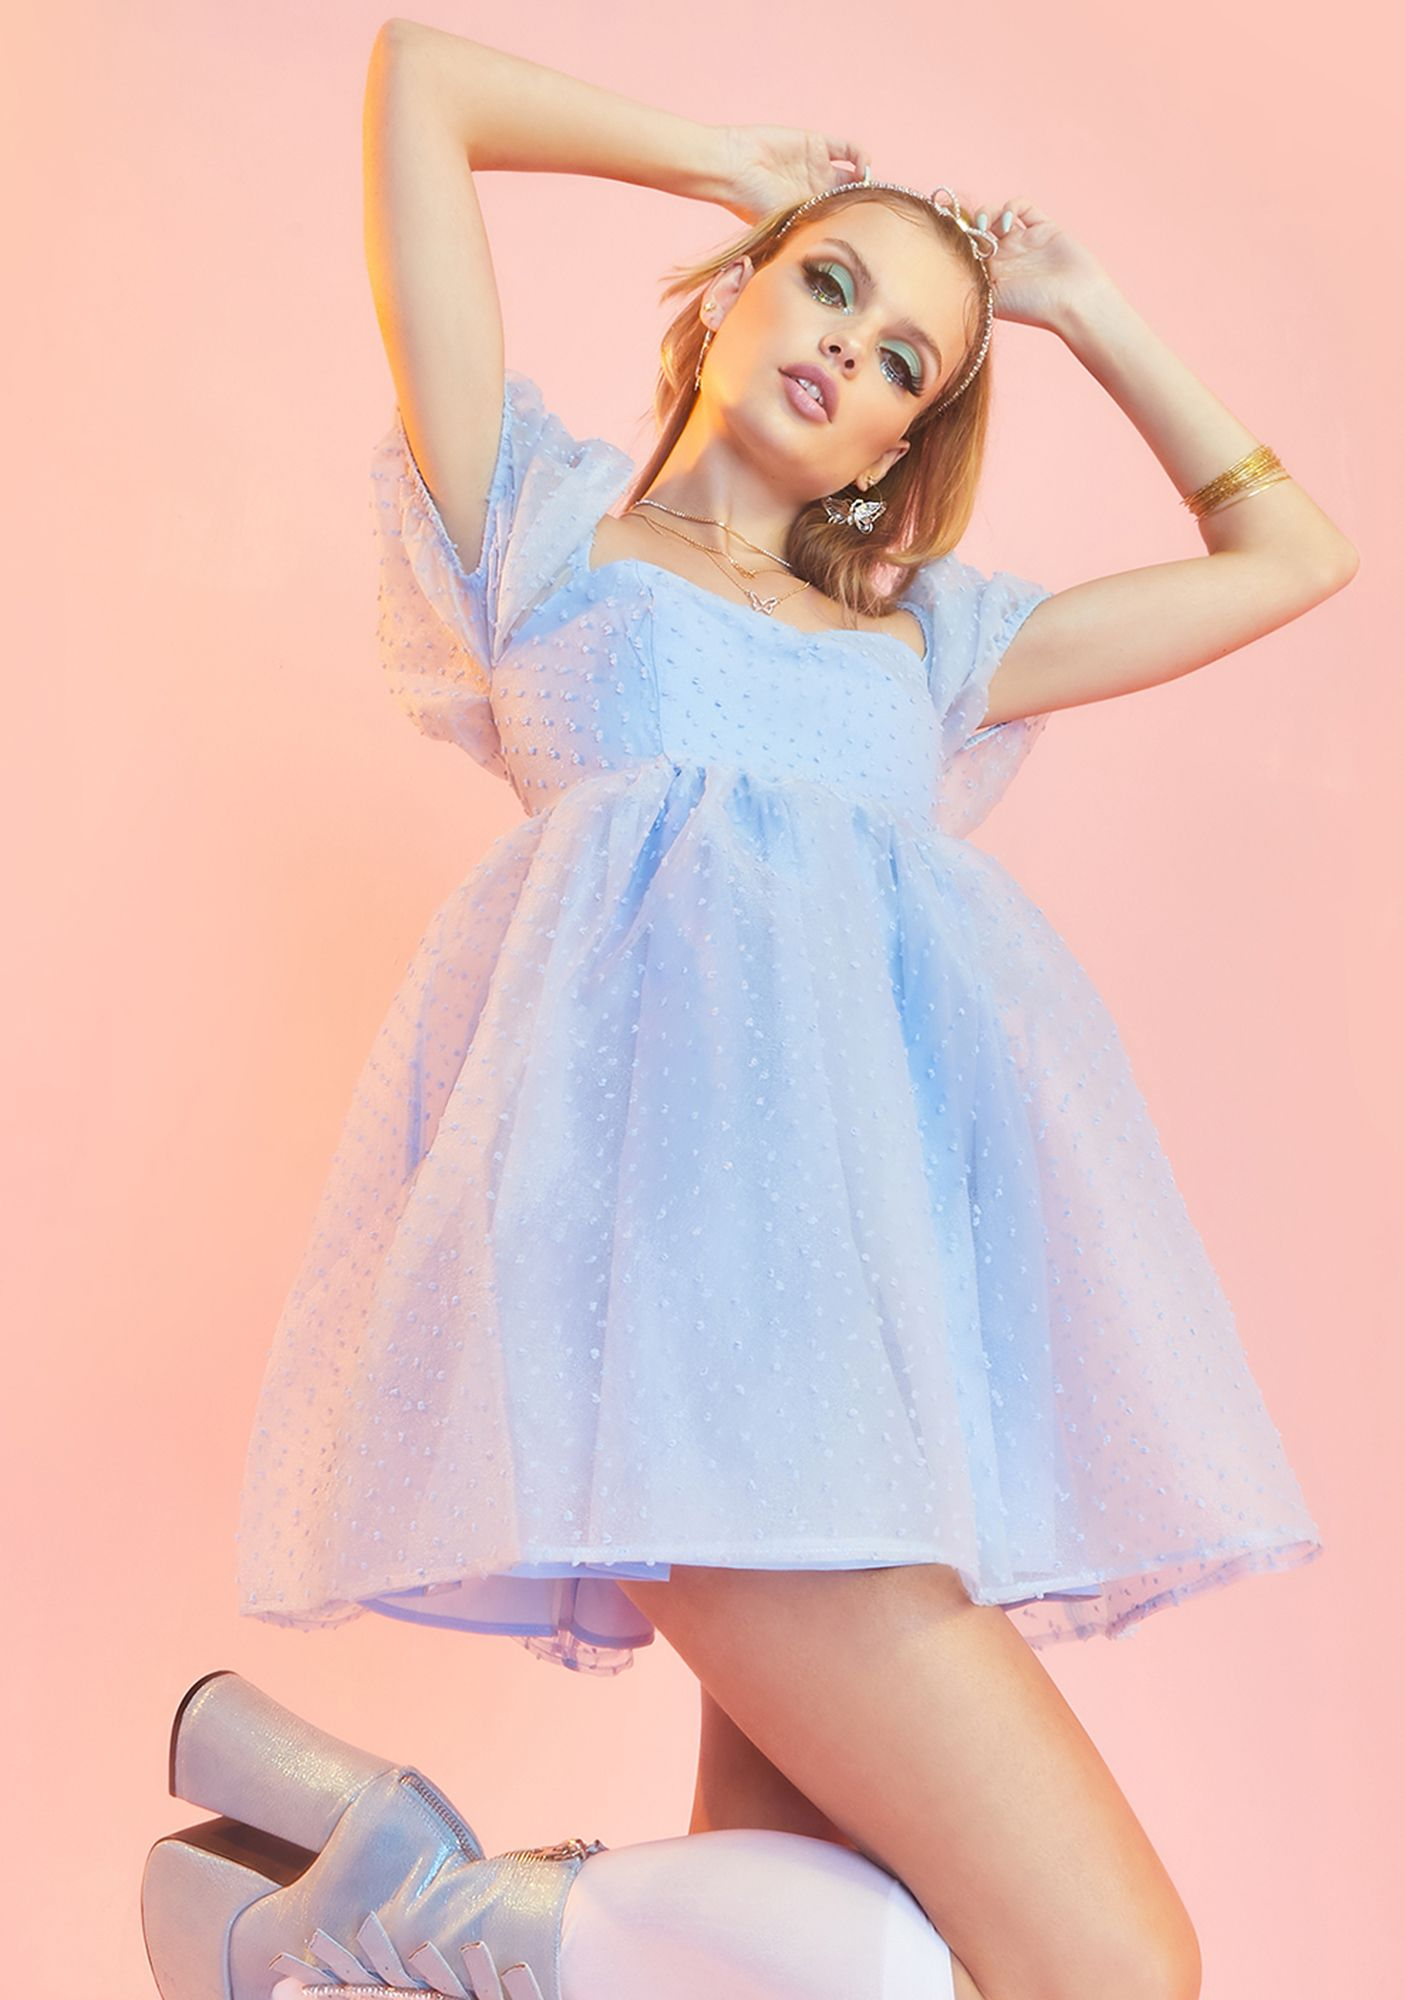 Complicated Courtship Babydoll Dress In 2021 Dresses Babydoll Dress Puff Dress [ 2000 x 1405 Pixel ]